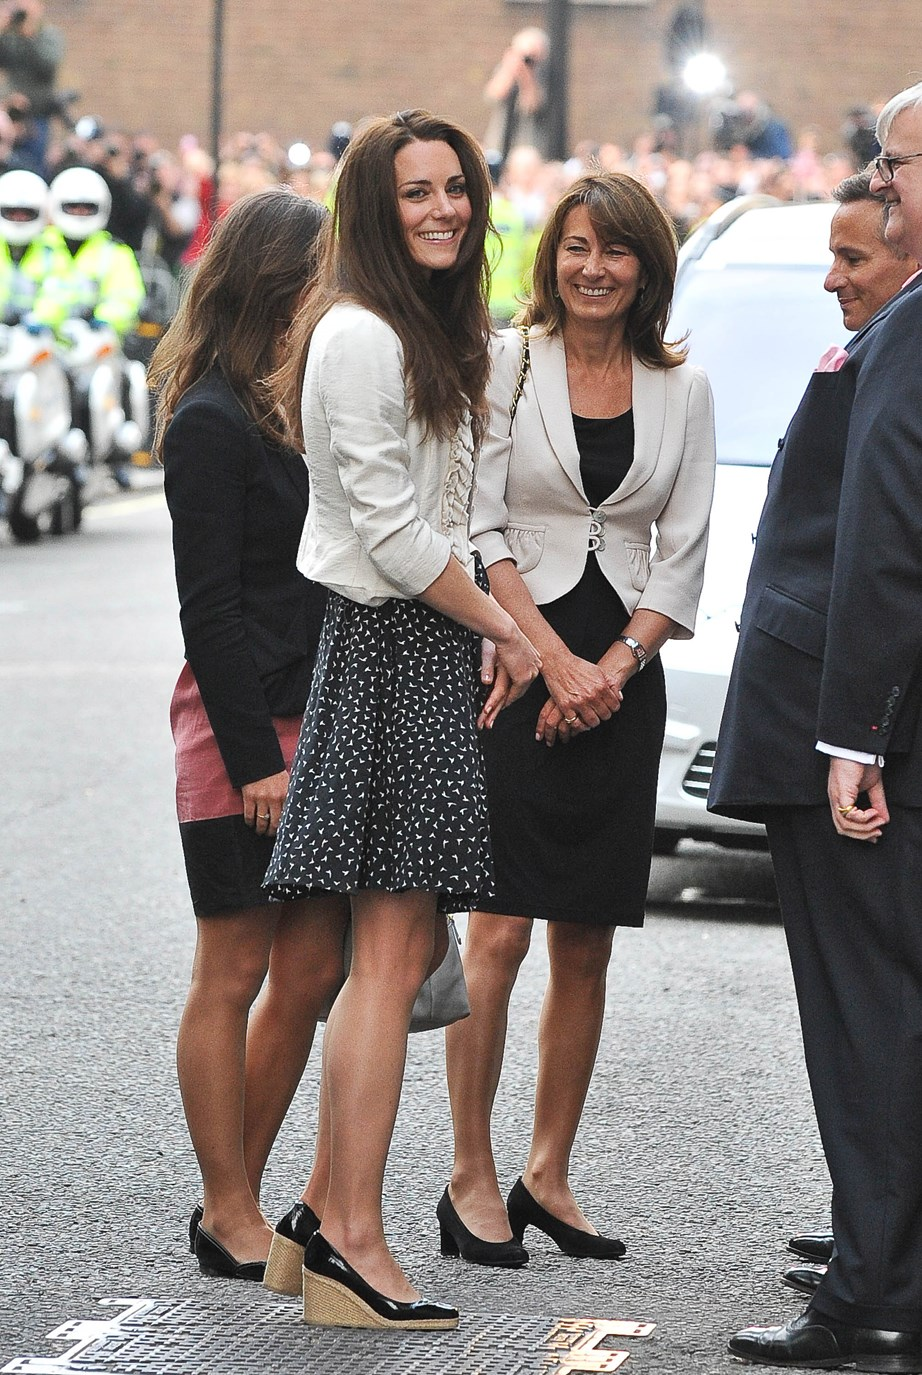 Catherine and Carole were perfectly coordinated on the night before the 2011 royal wedding.